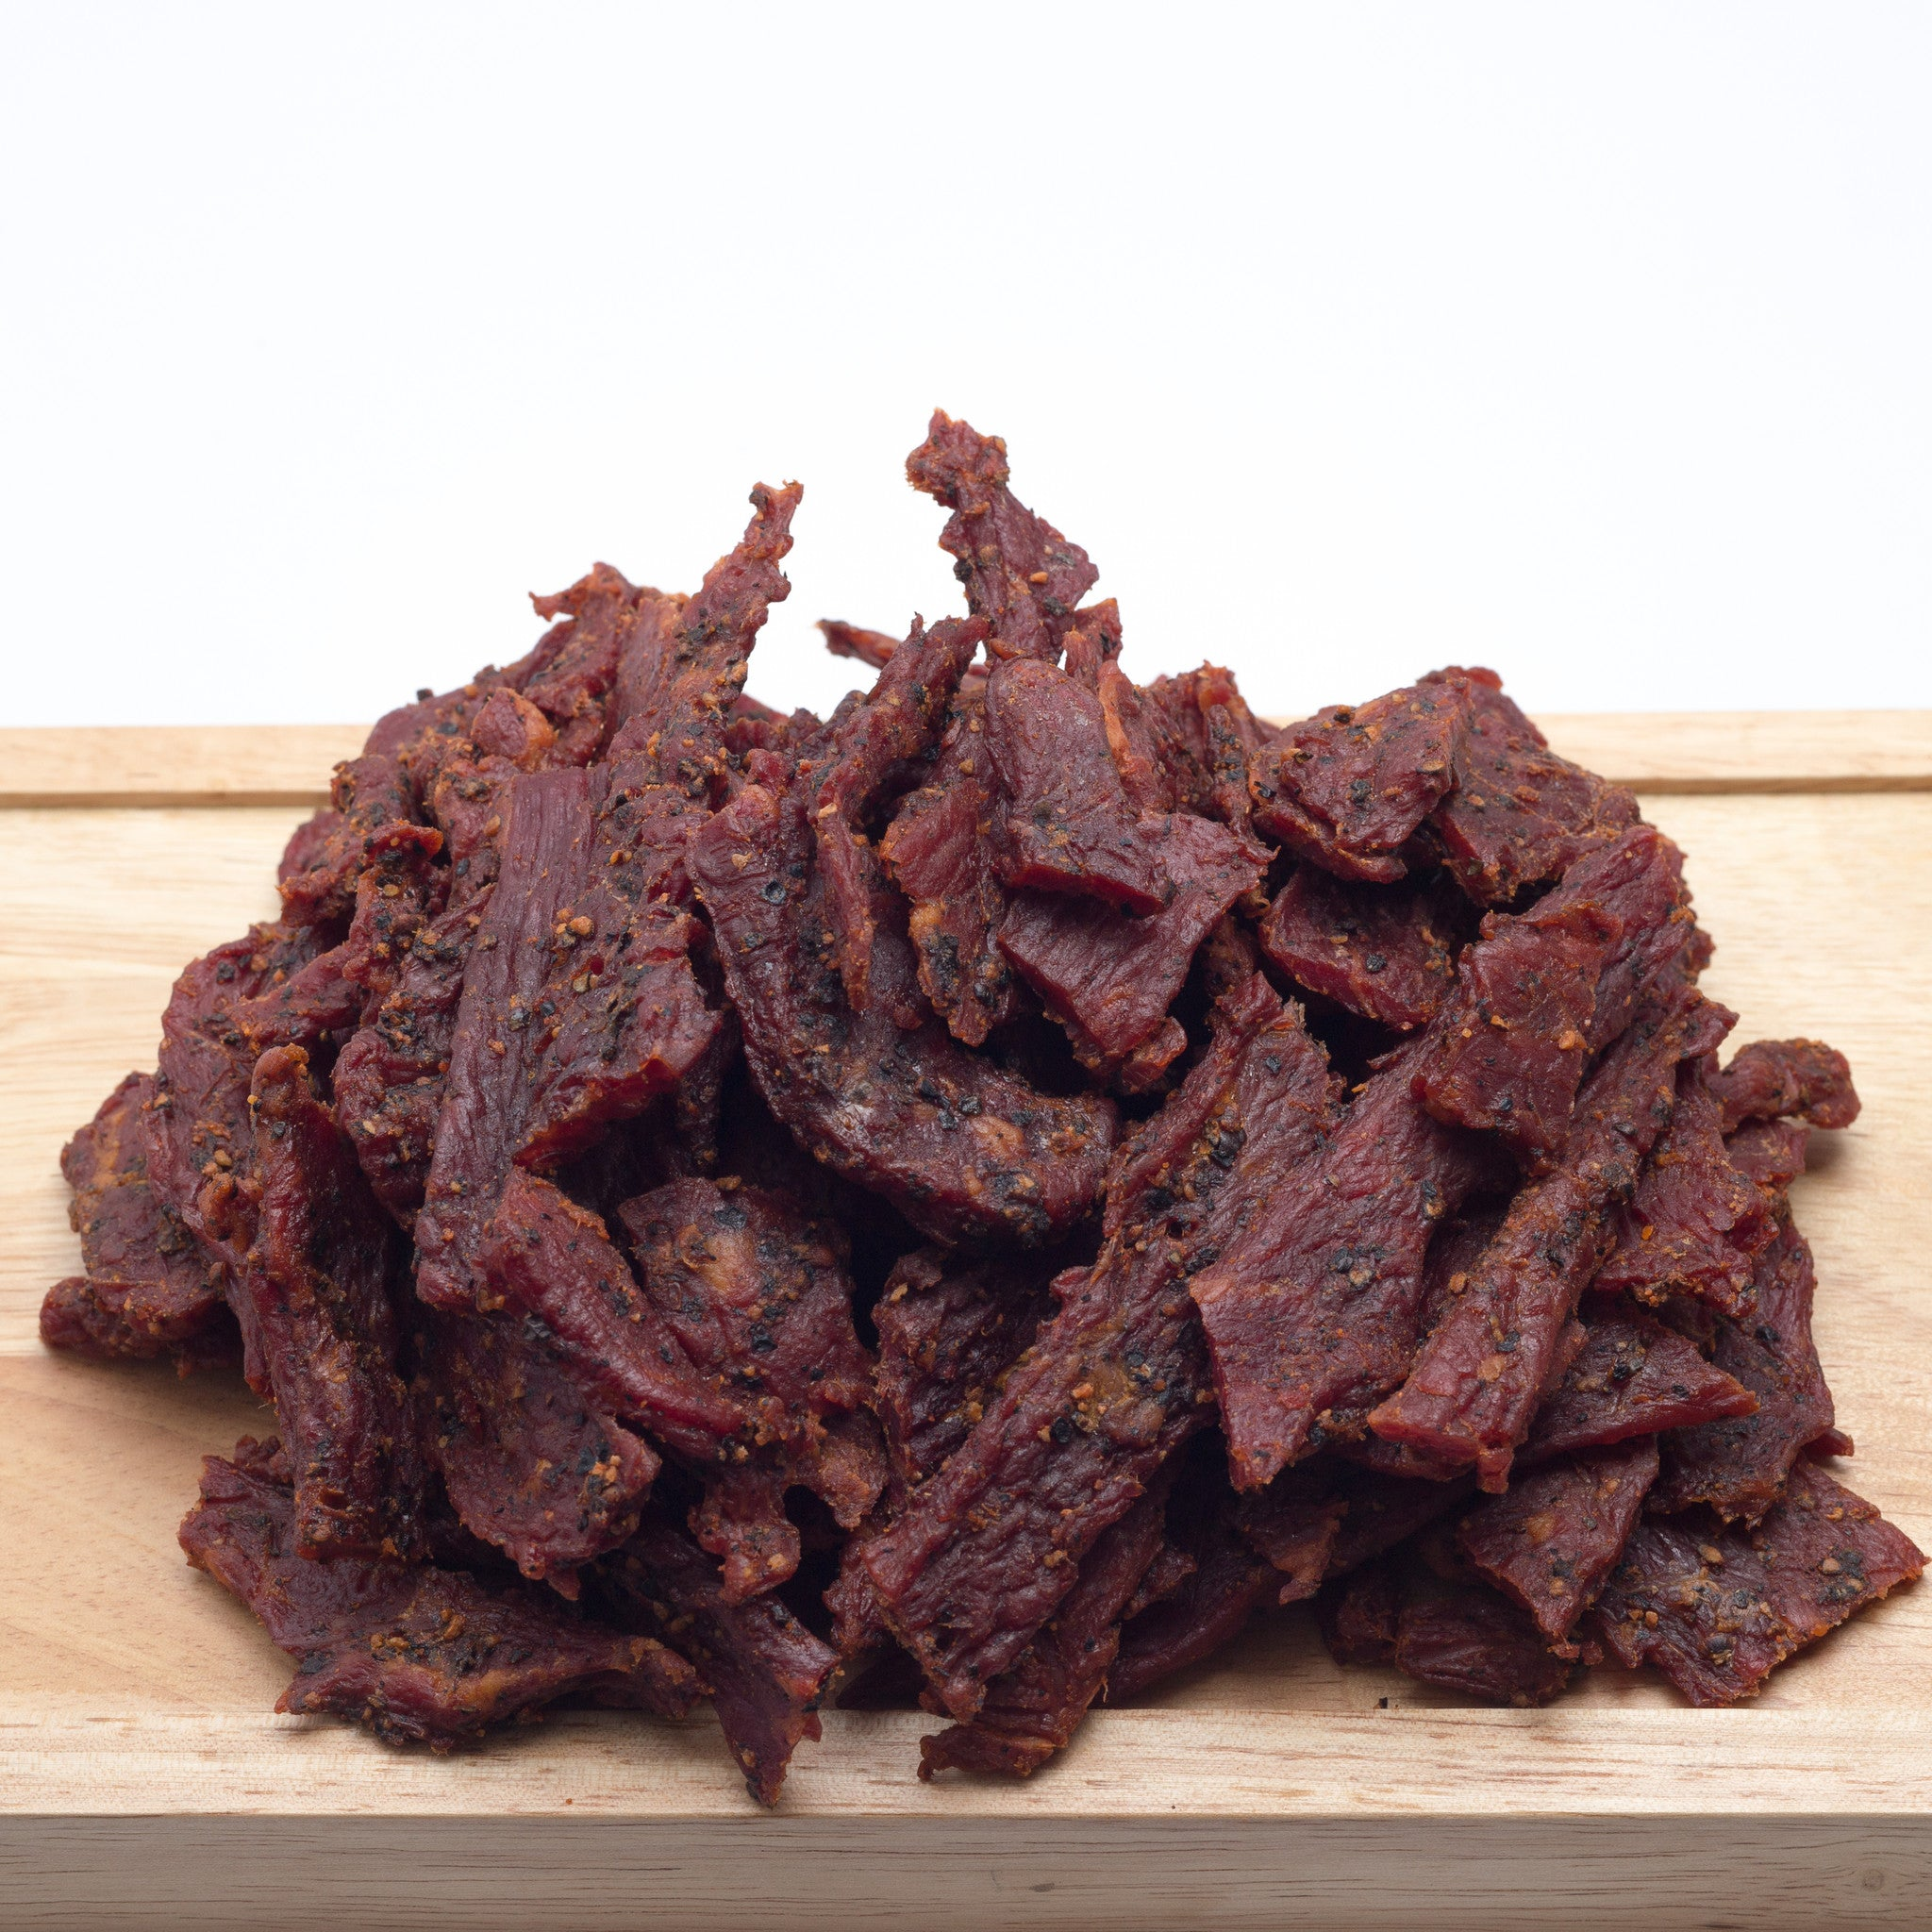 Grandpa Jack's Beef Jerky - Black Pepper Flavor - Tender & Thick Pieces (15oz. Bag)